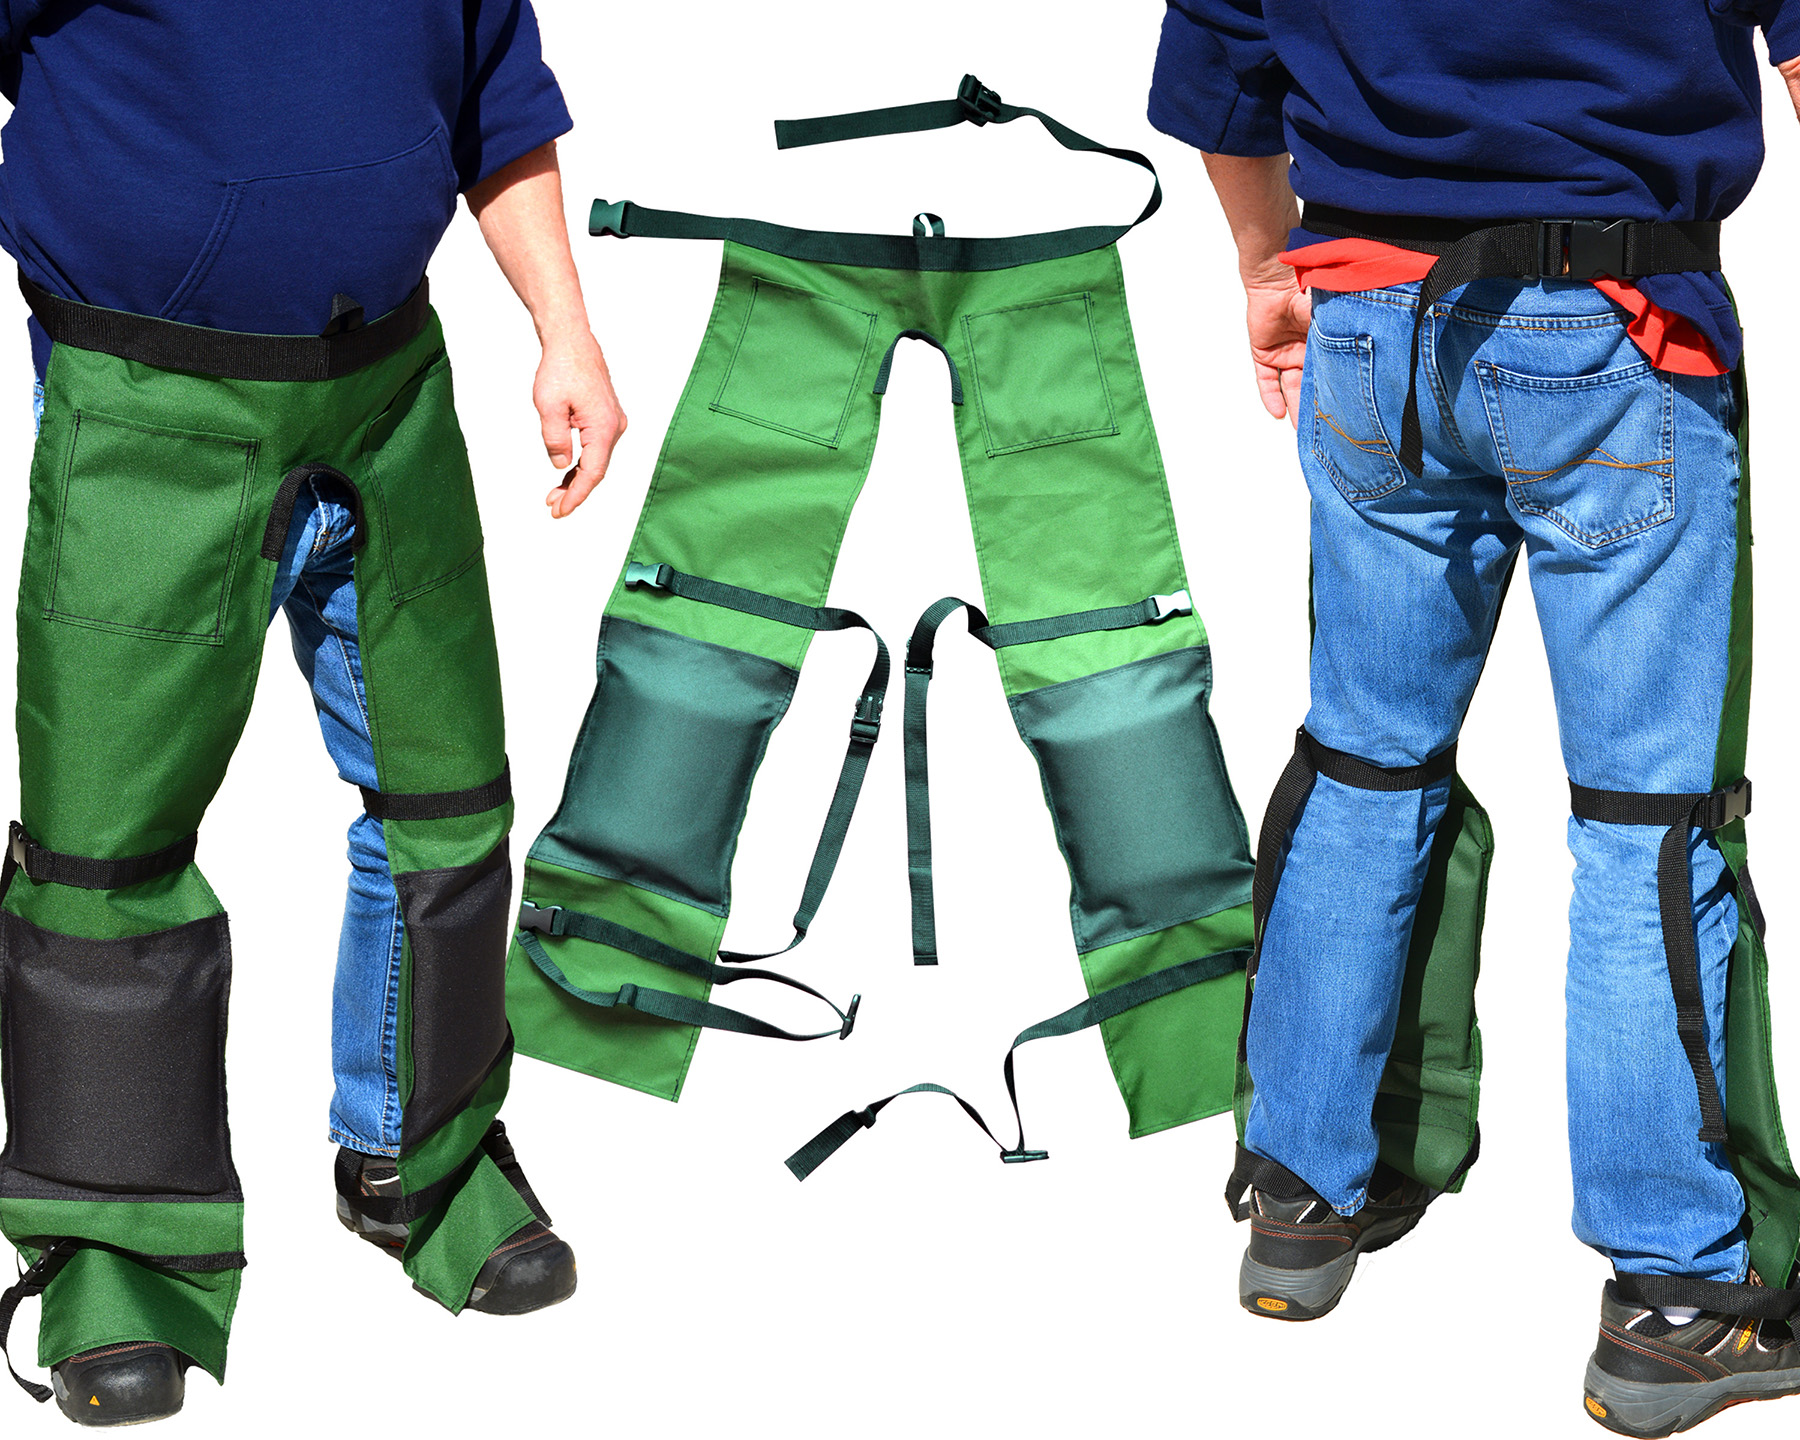 Zenport Safety Chaps AGC1 Protective Workwear, Forest Green